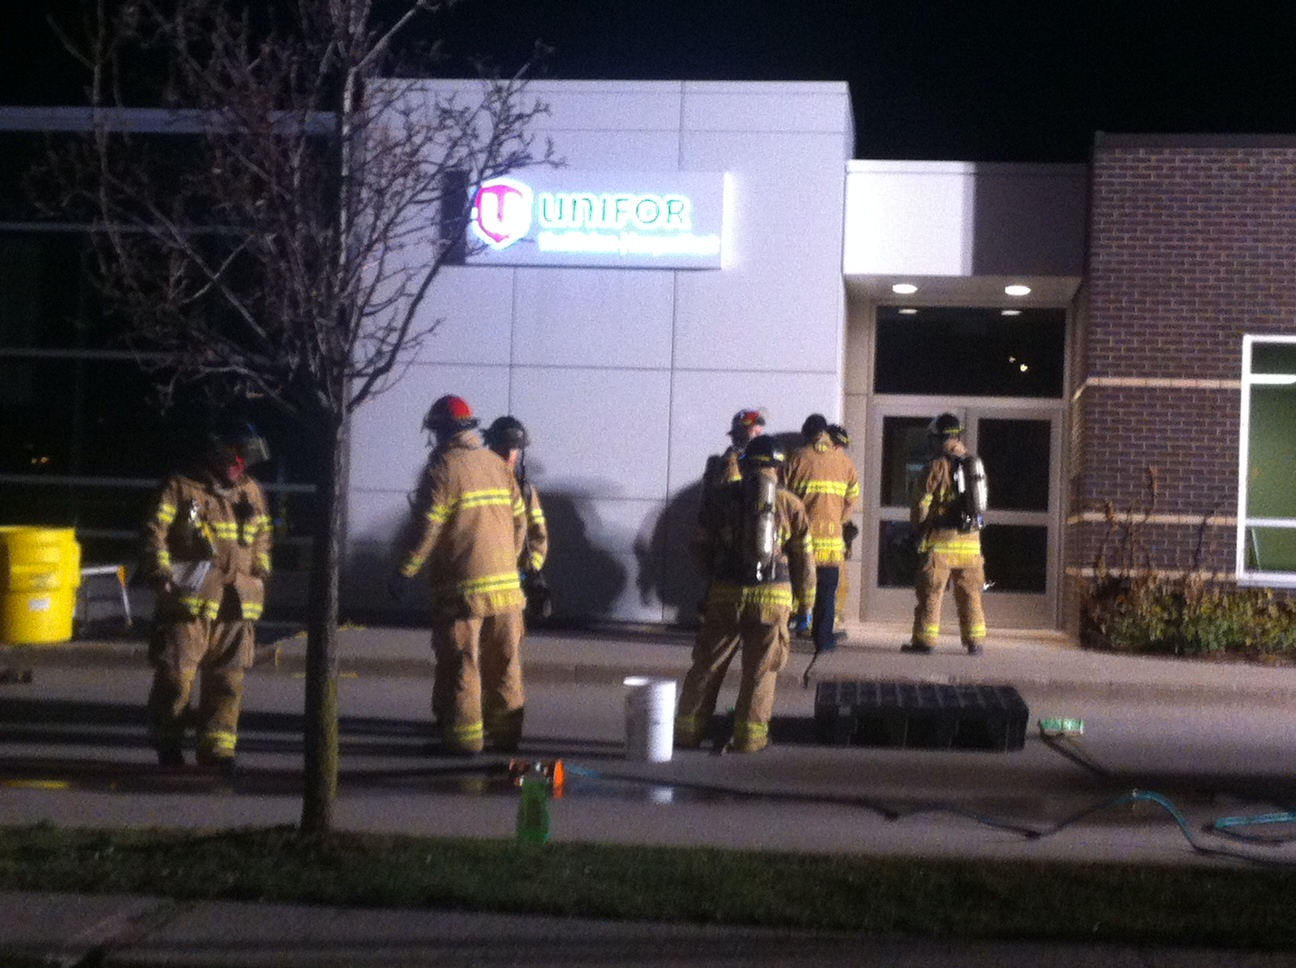 Firefighters attend the Unifor office at Pine Valley Blvd. in London in response to a suspicious package, April 16, 2014. (Photo by Scott Kitching)